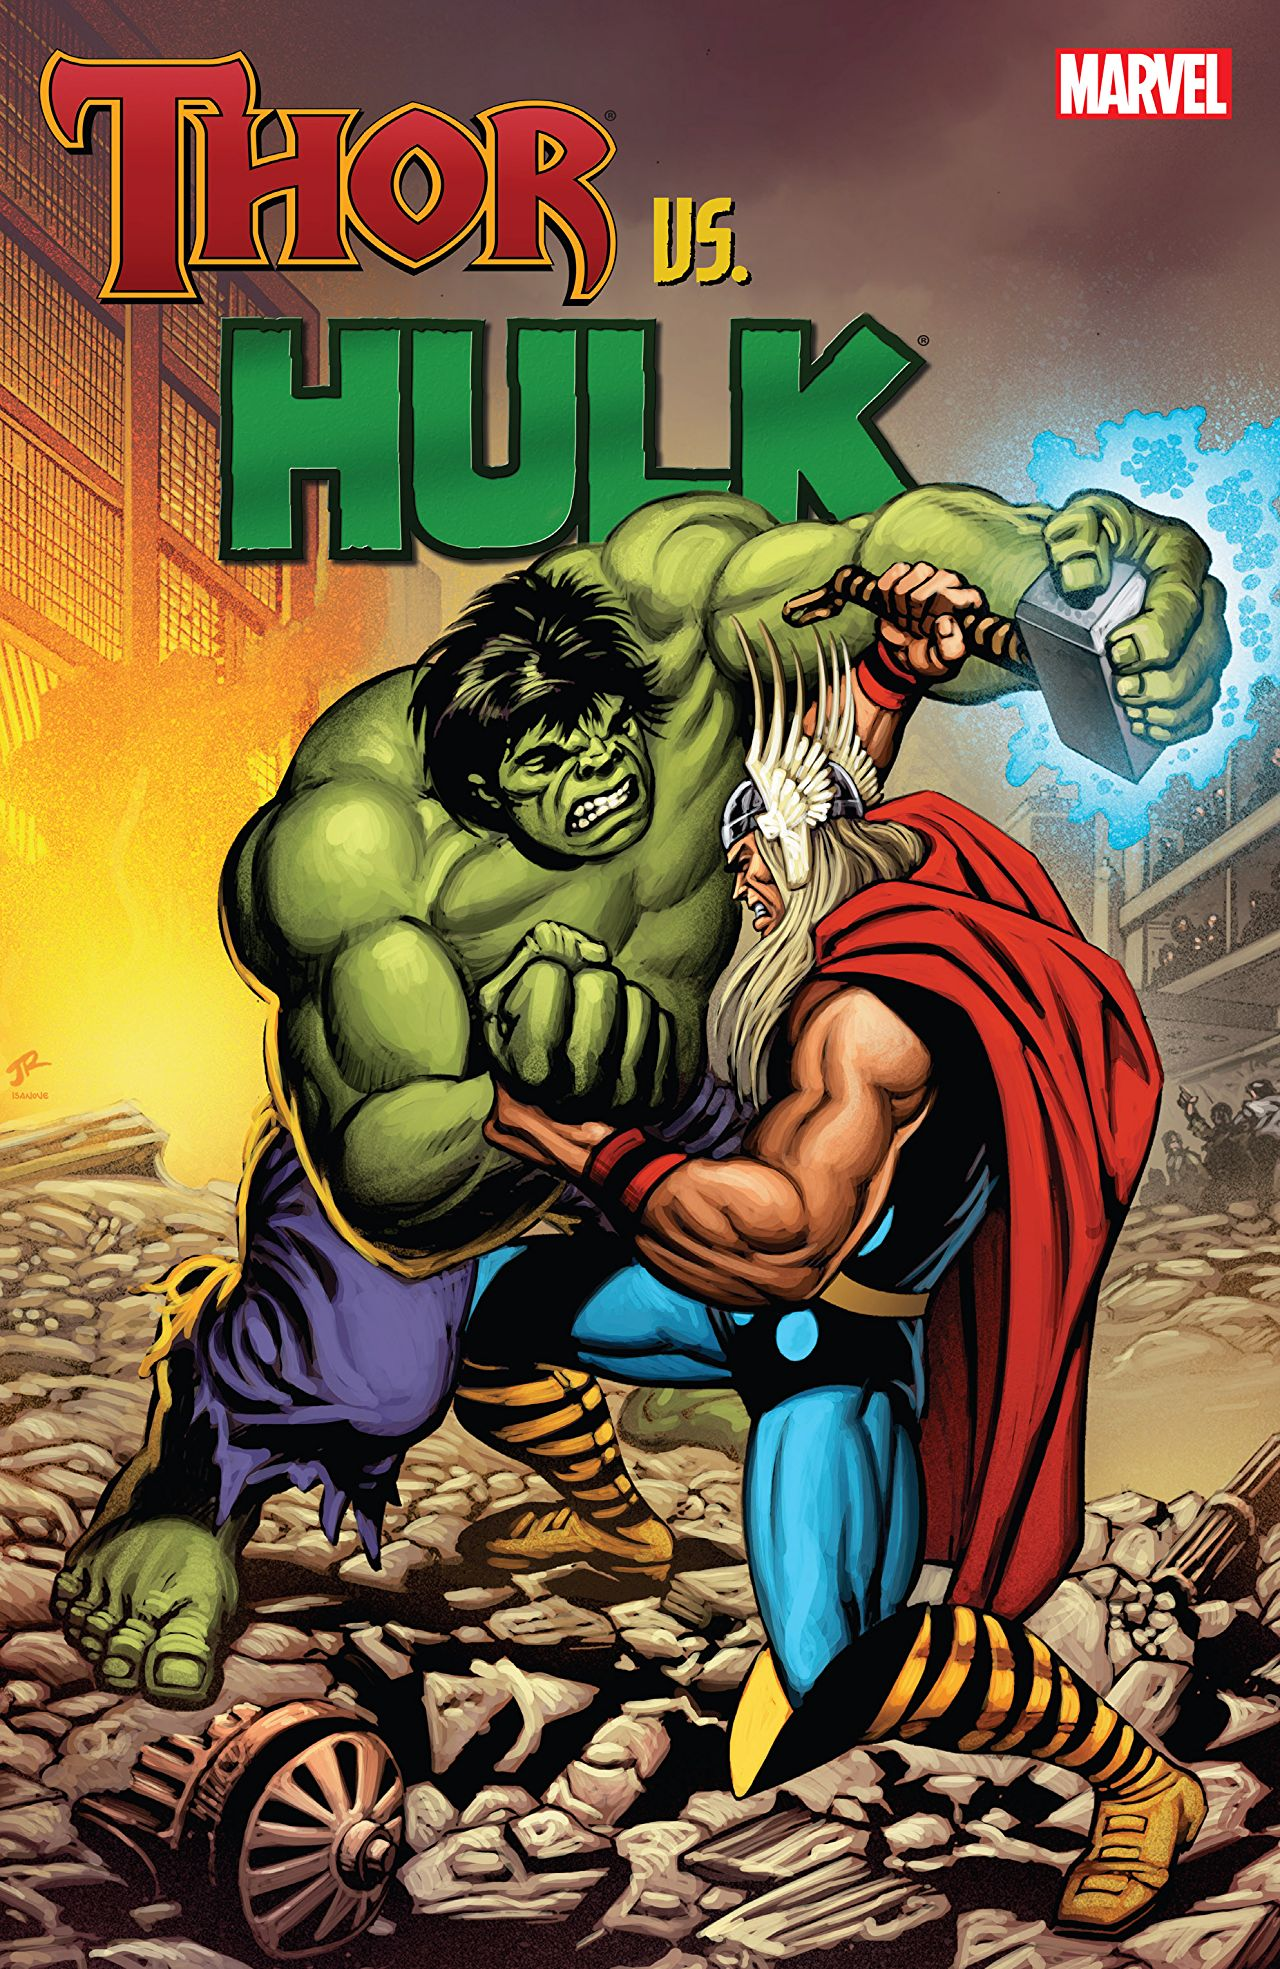 A solid collection showcasing a slew of epic battles between Hulk and Thor.